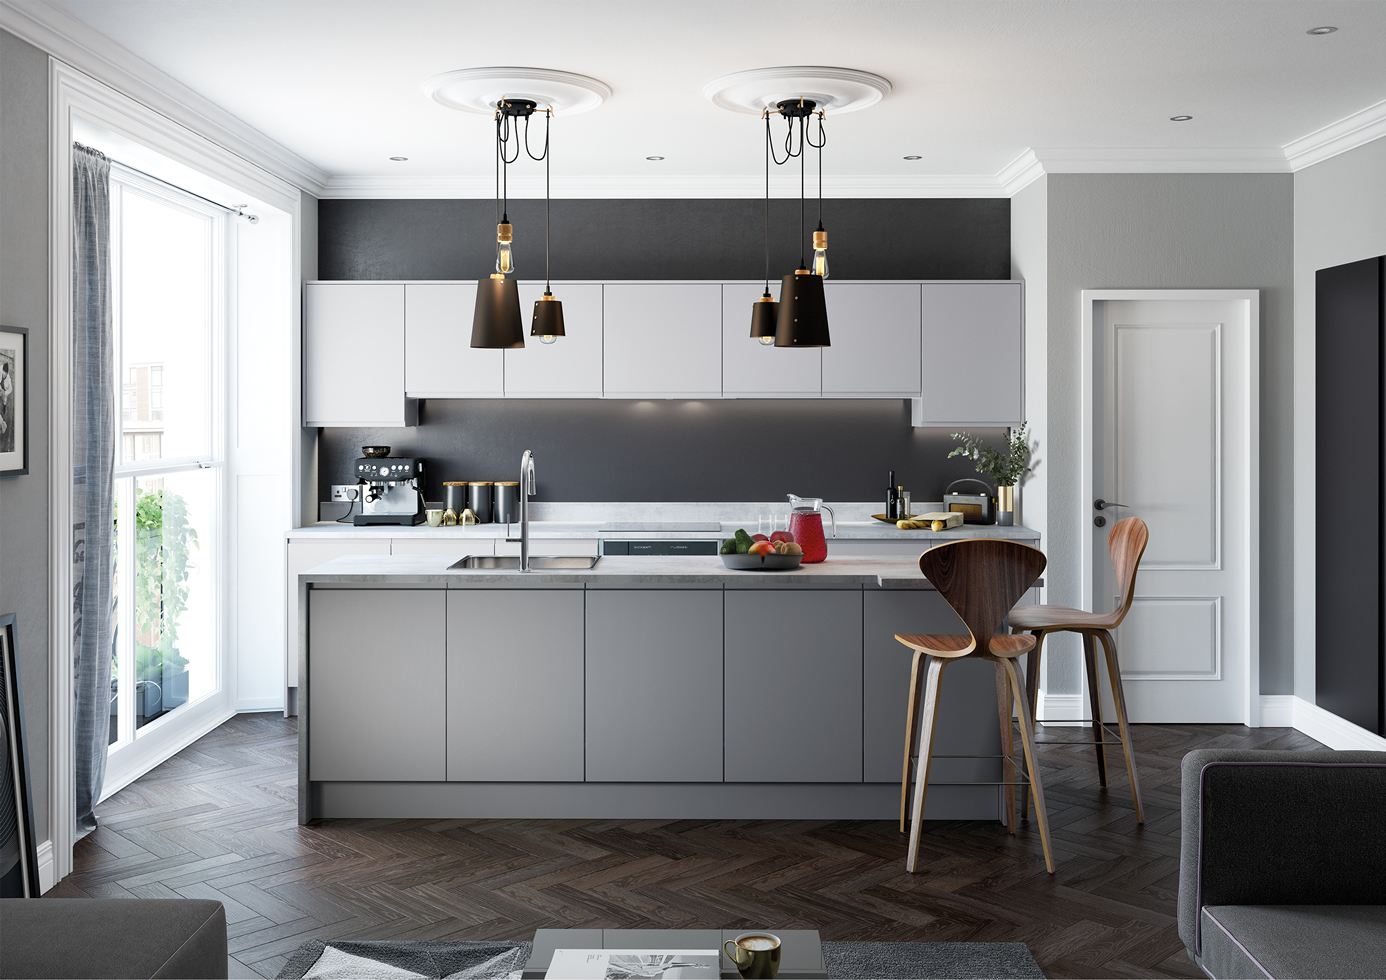 Strada Matte Light Grey and Dust Grey Main Shot mya Kitchens Stafford